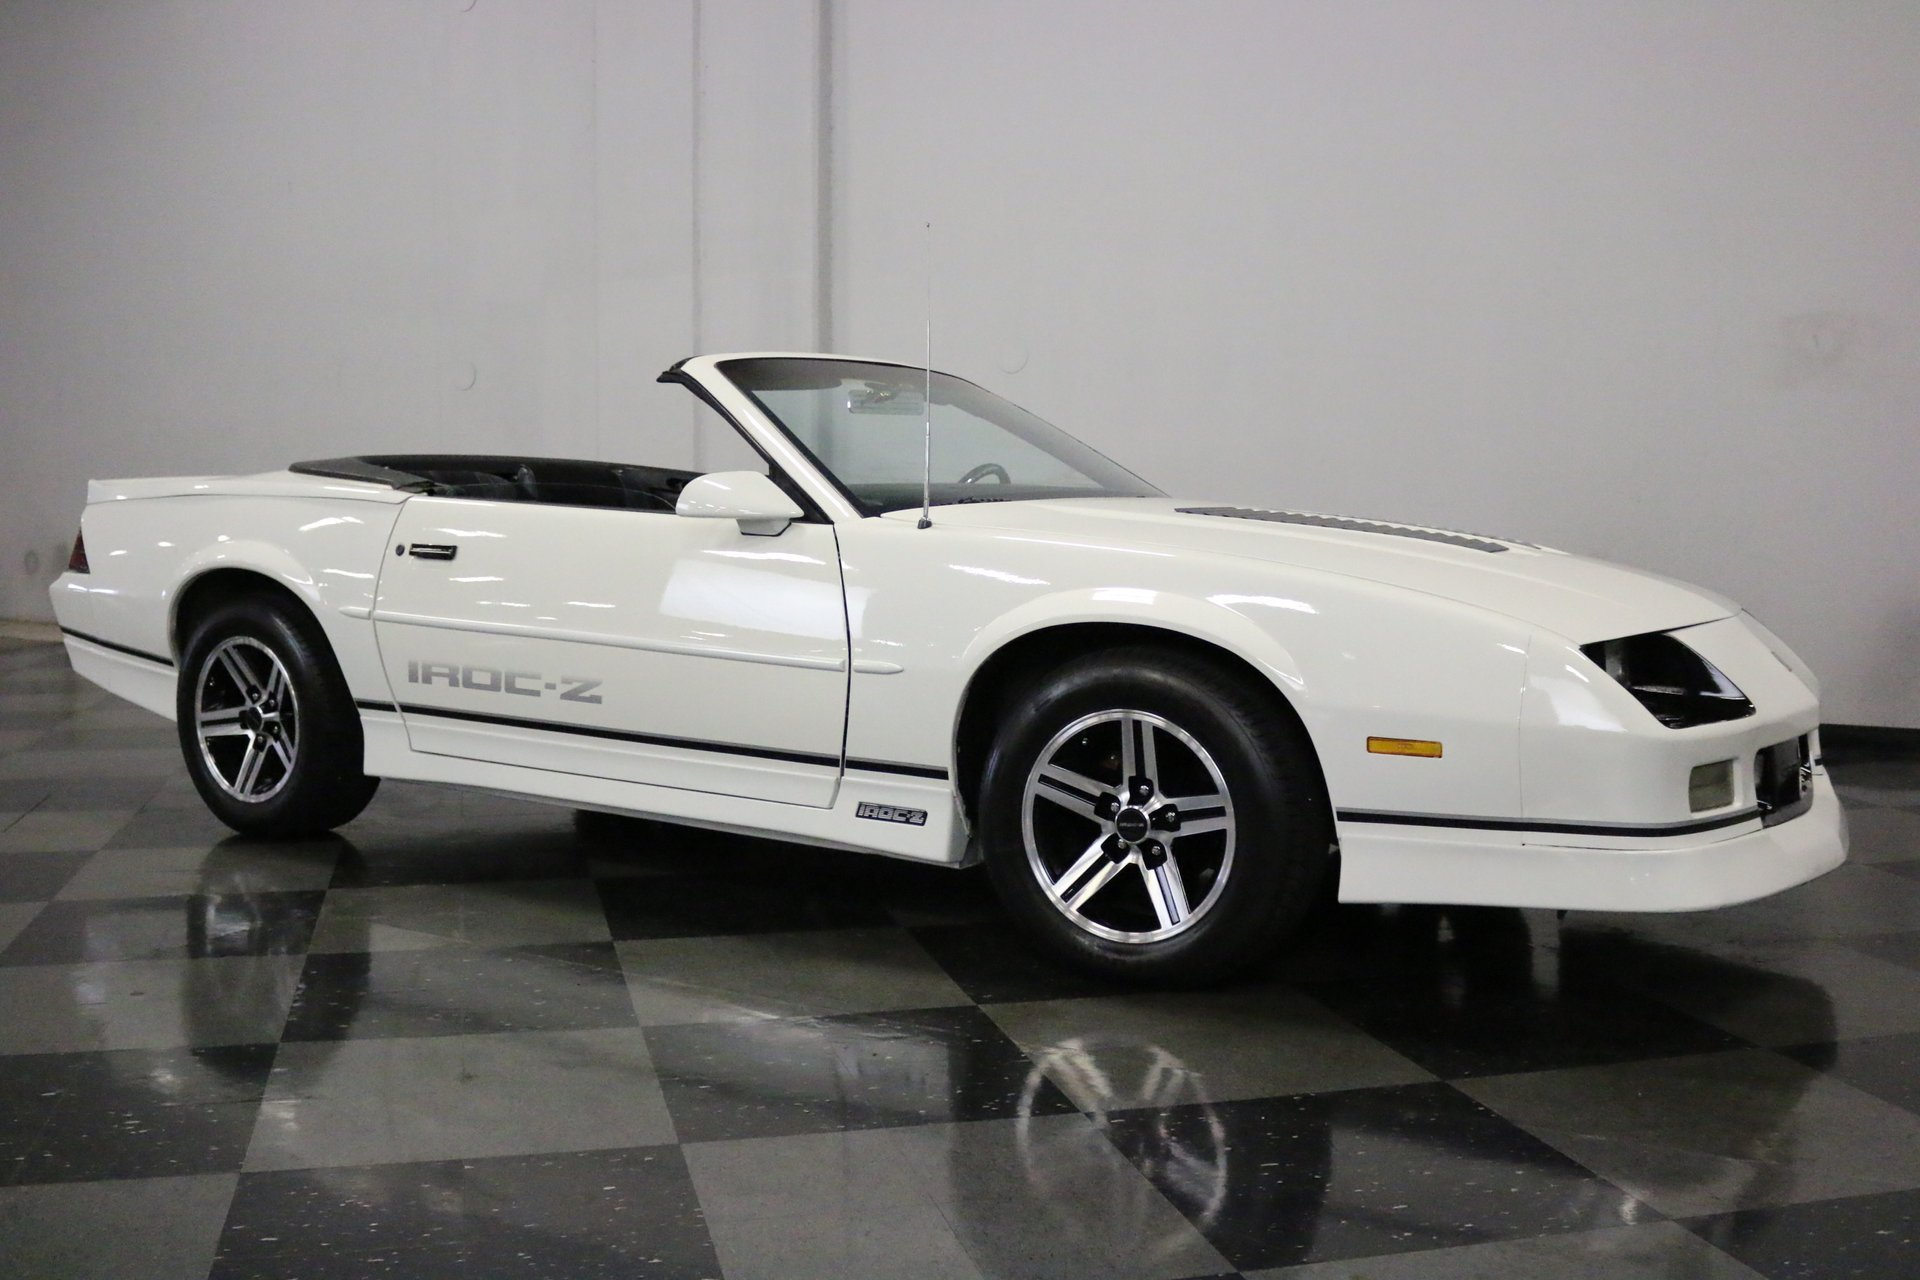 1990 chevrolet camaro streetside classics the nation s trusted classic car consignment dealer 1990 chevrolet camaro streetside